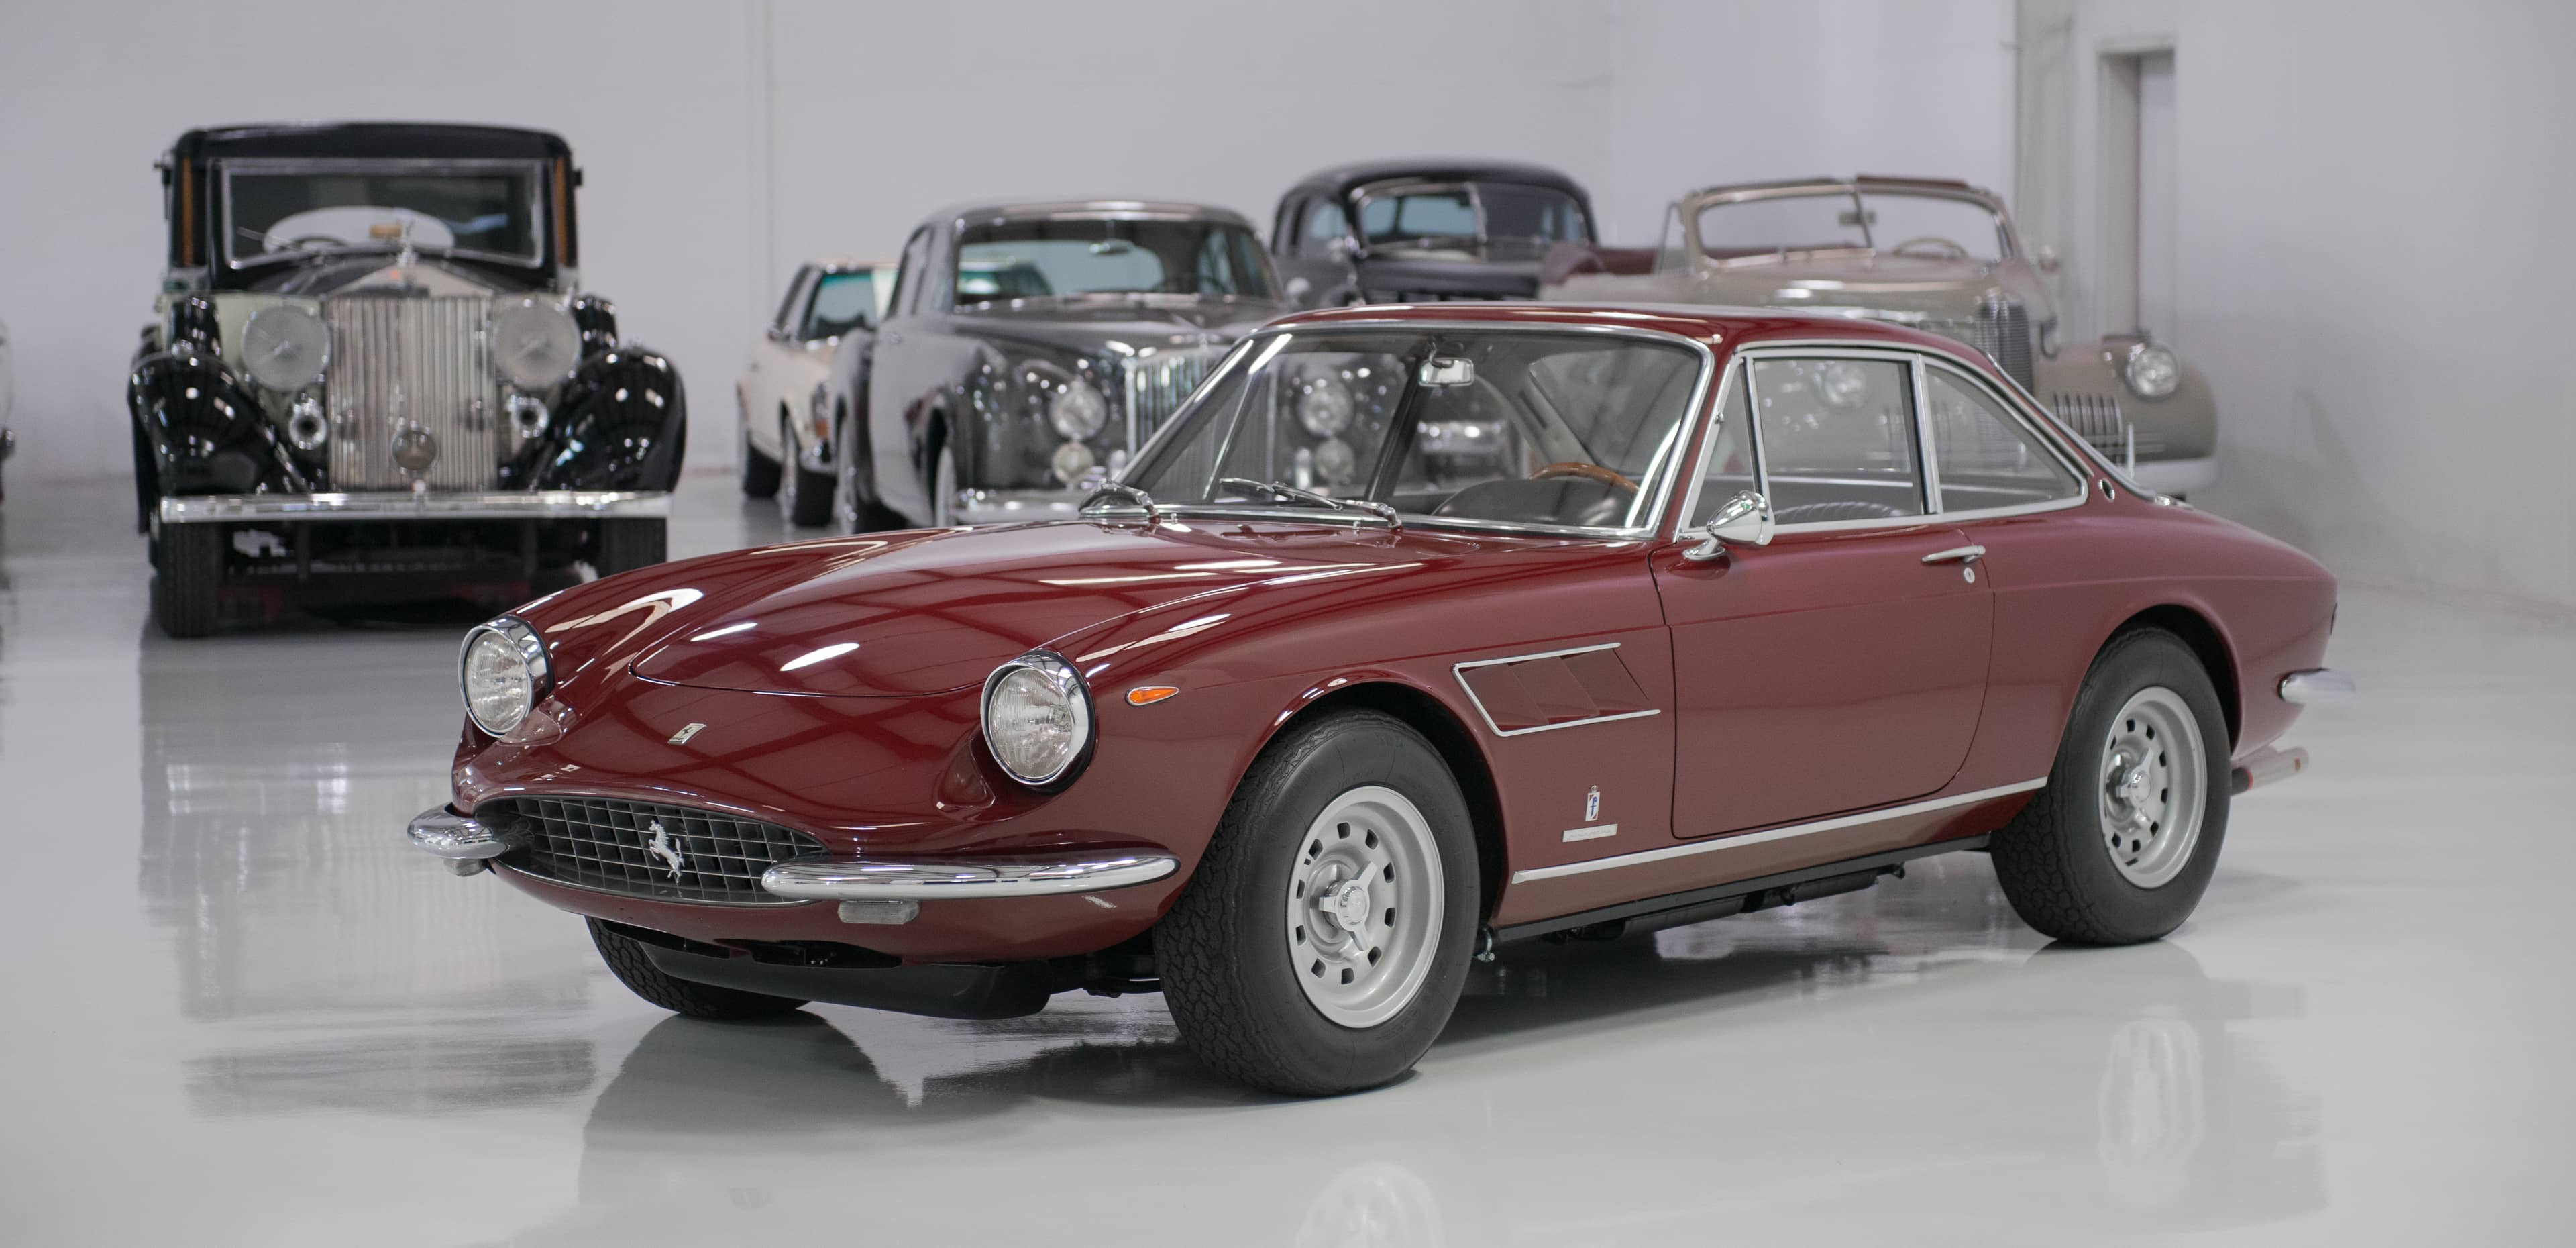 Premium collector cars for sale, classic ferrari, Daniel Schmitt & Co. St. Louis